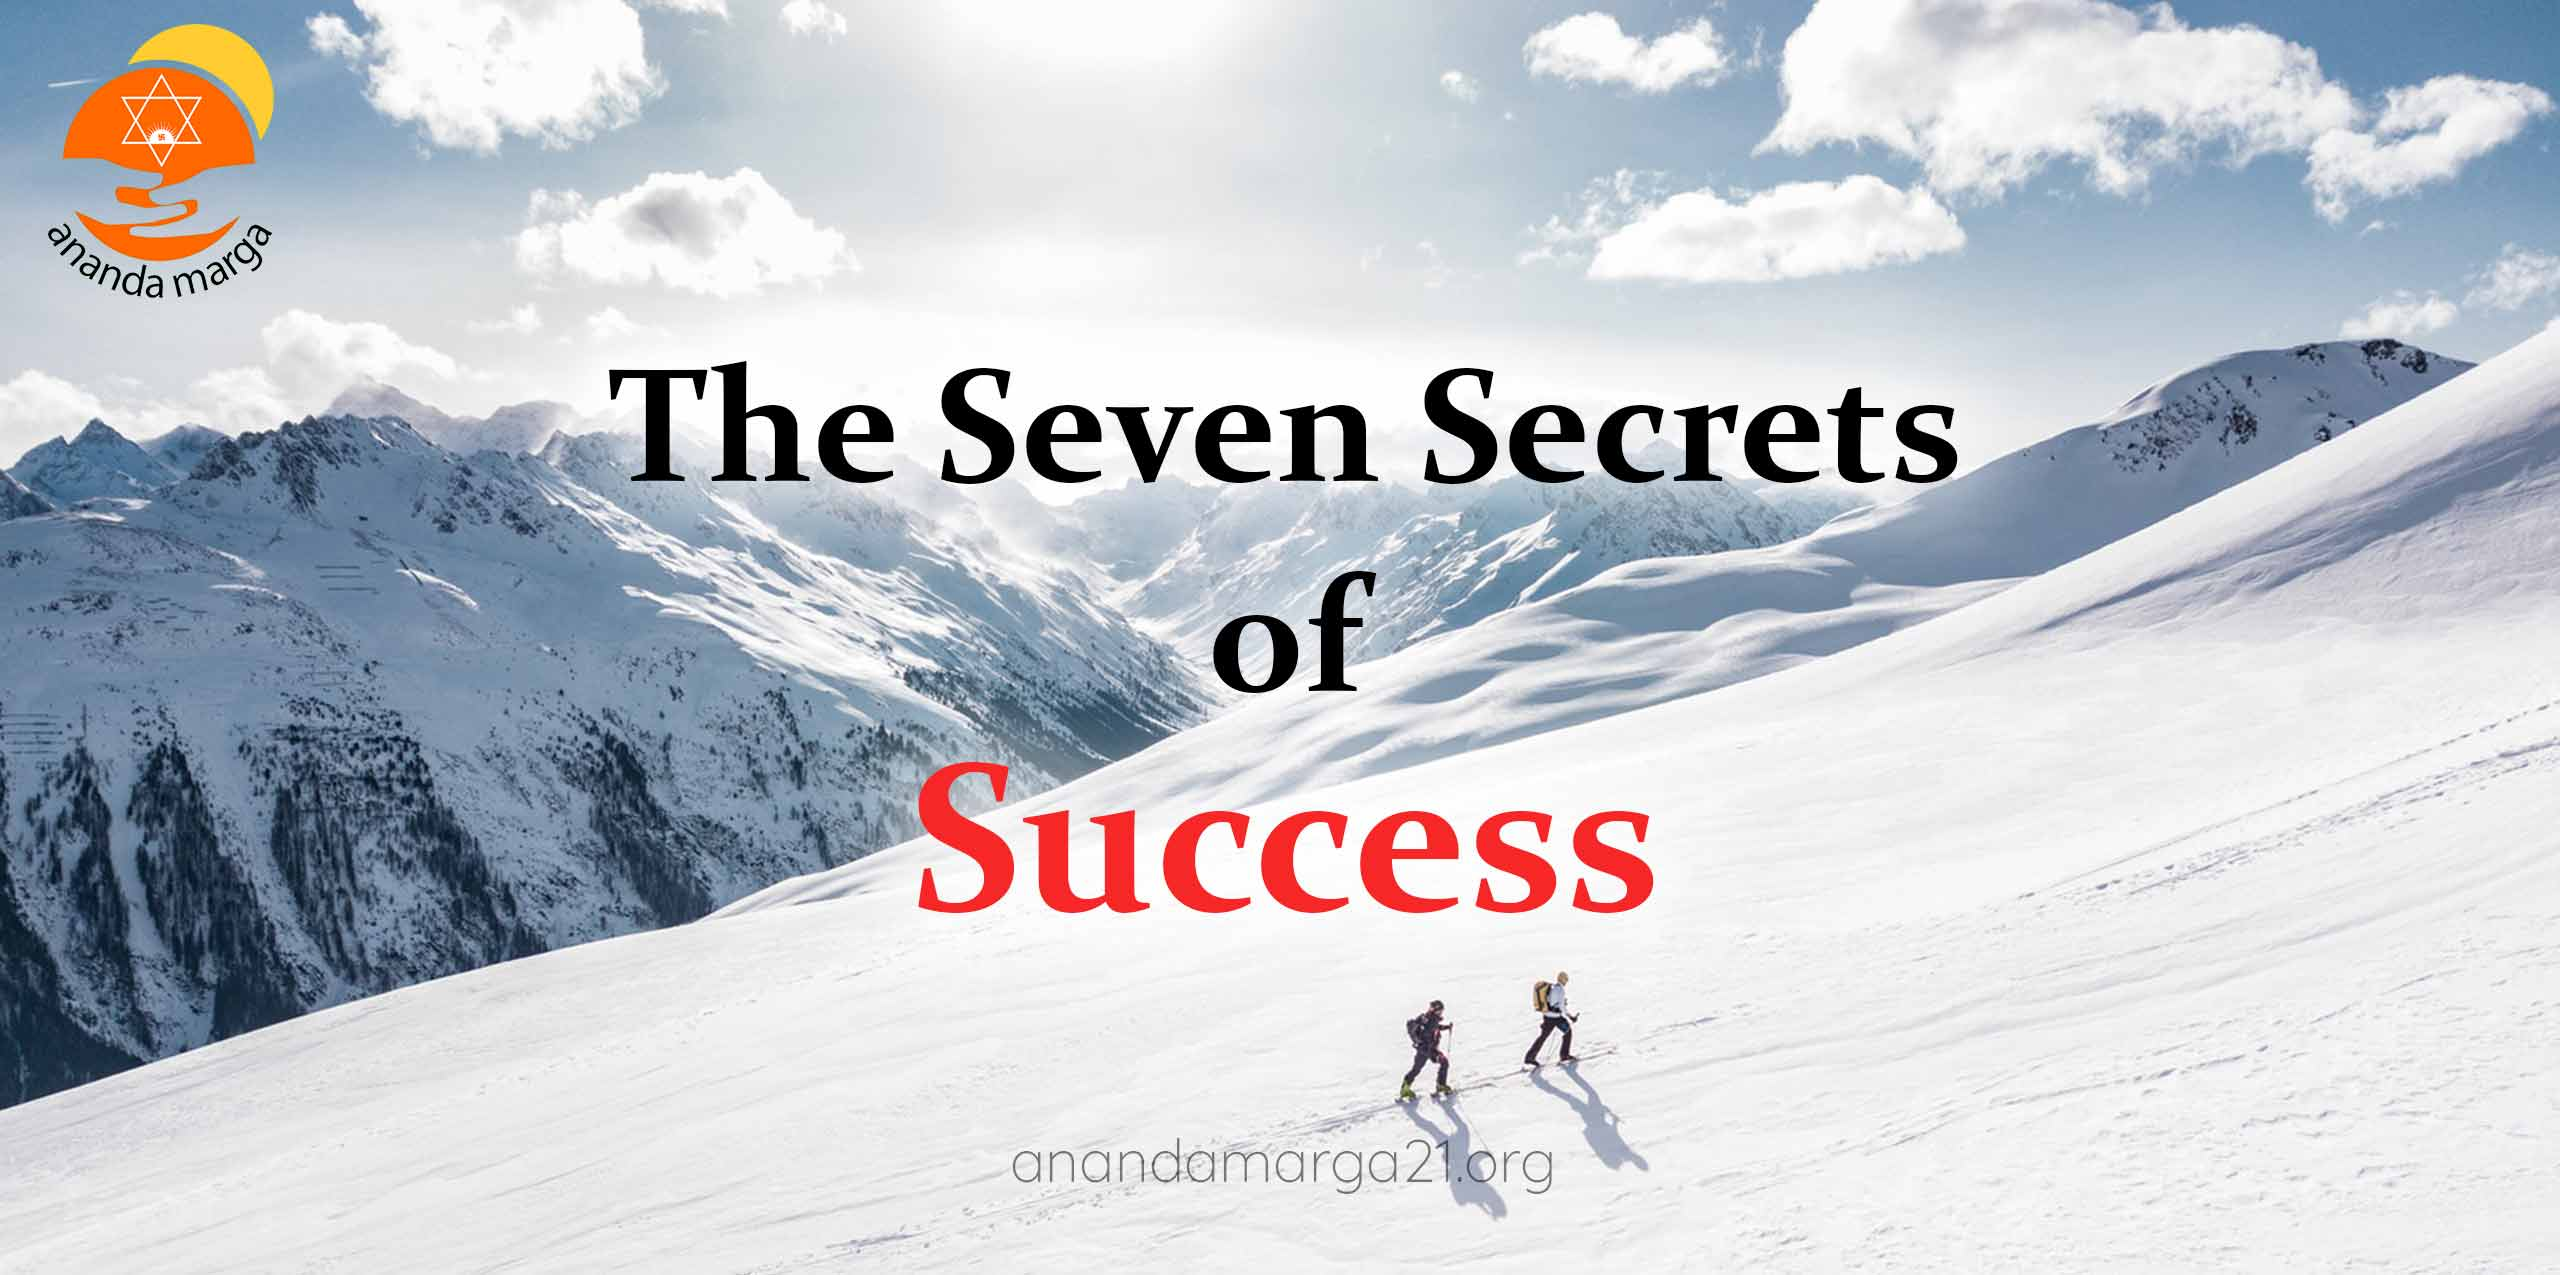 The-Seven-Secrets-of-Success-av-3-Ananda-marga